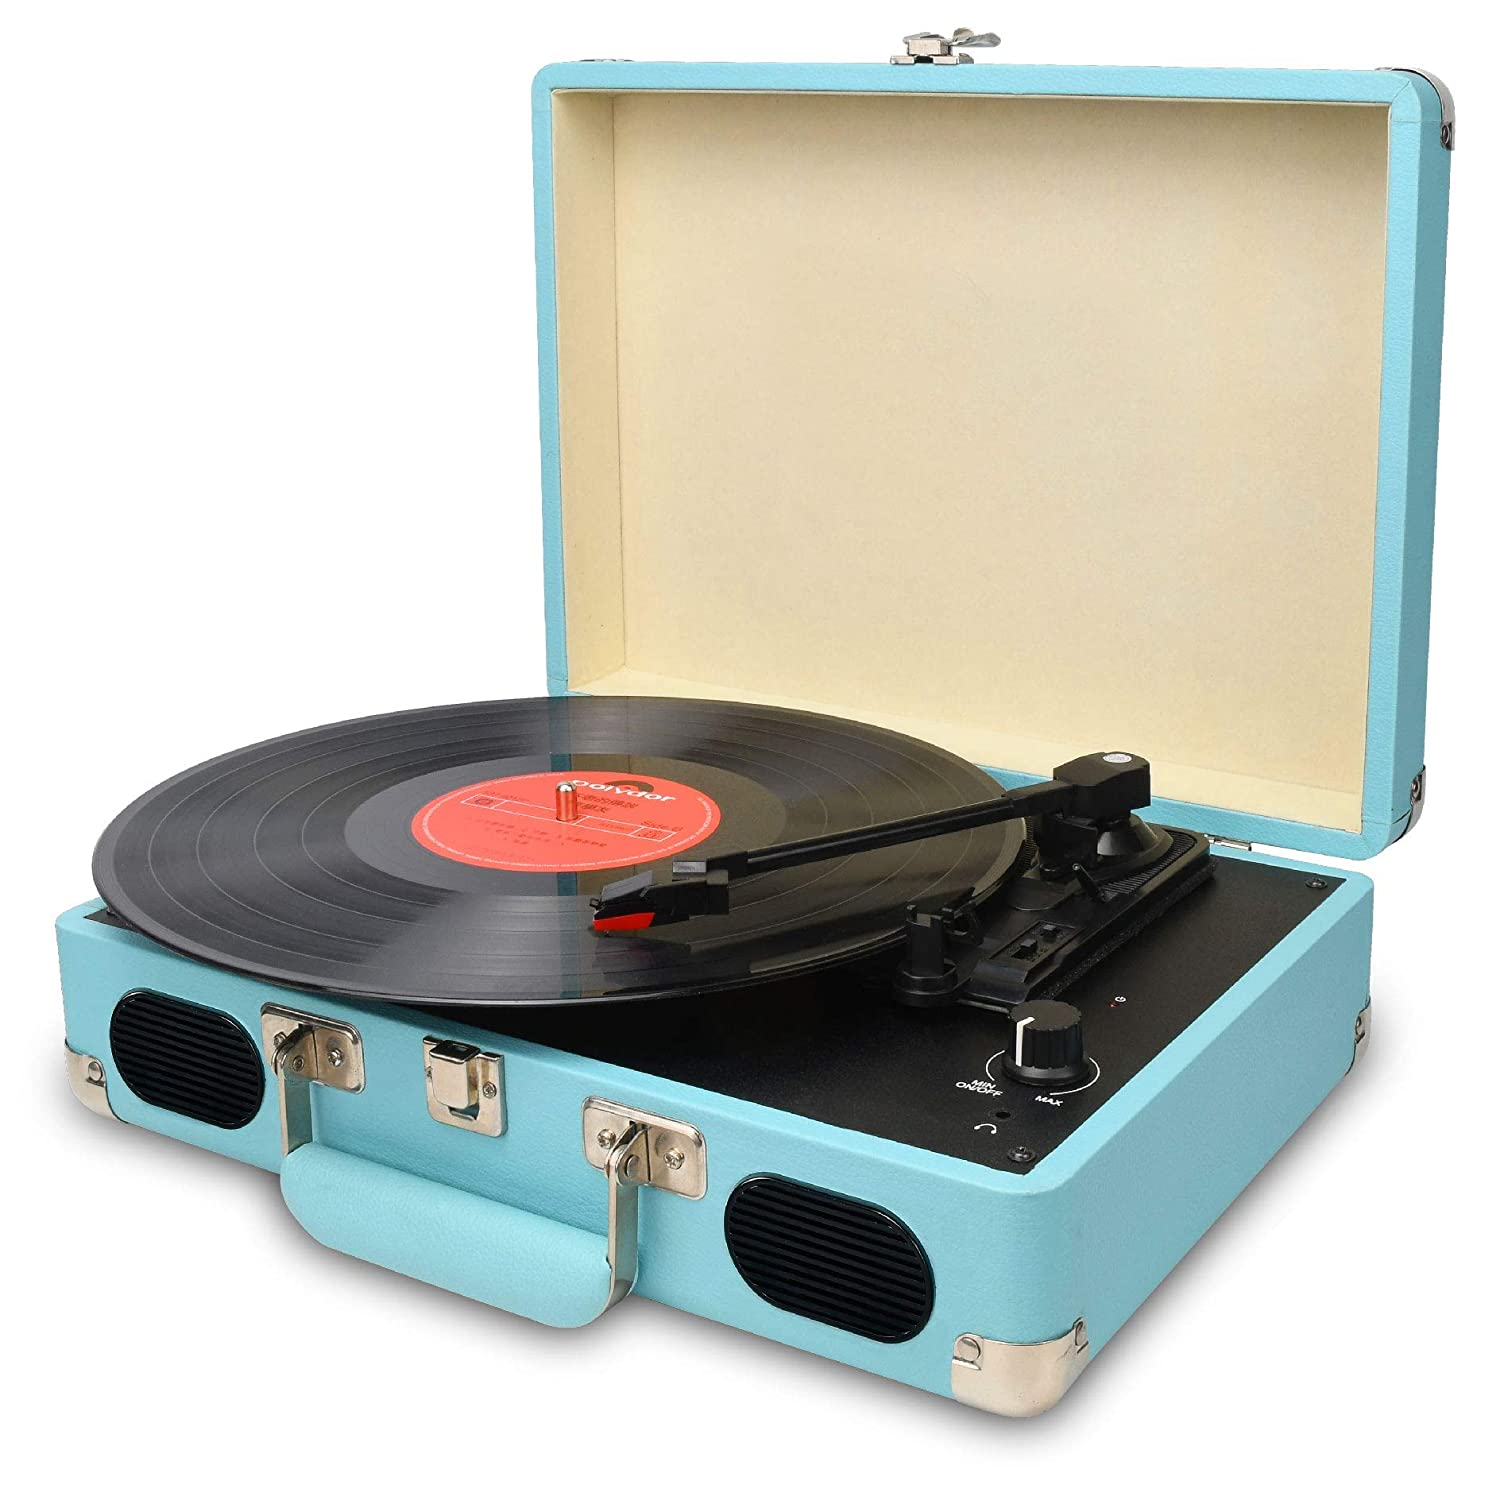 DIGITNOW! Turntable record player 3speeds with Built-in Stereo Speakers,  Supports USB / RCA Output / Headphone Jack / MP3 / Mobile Phones Music